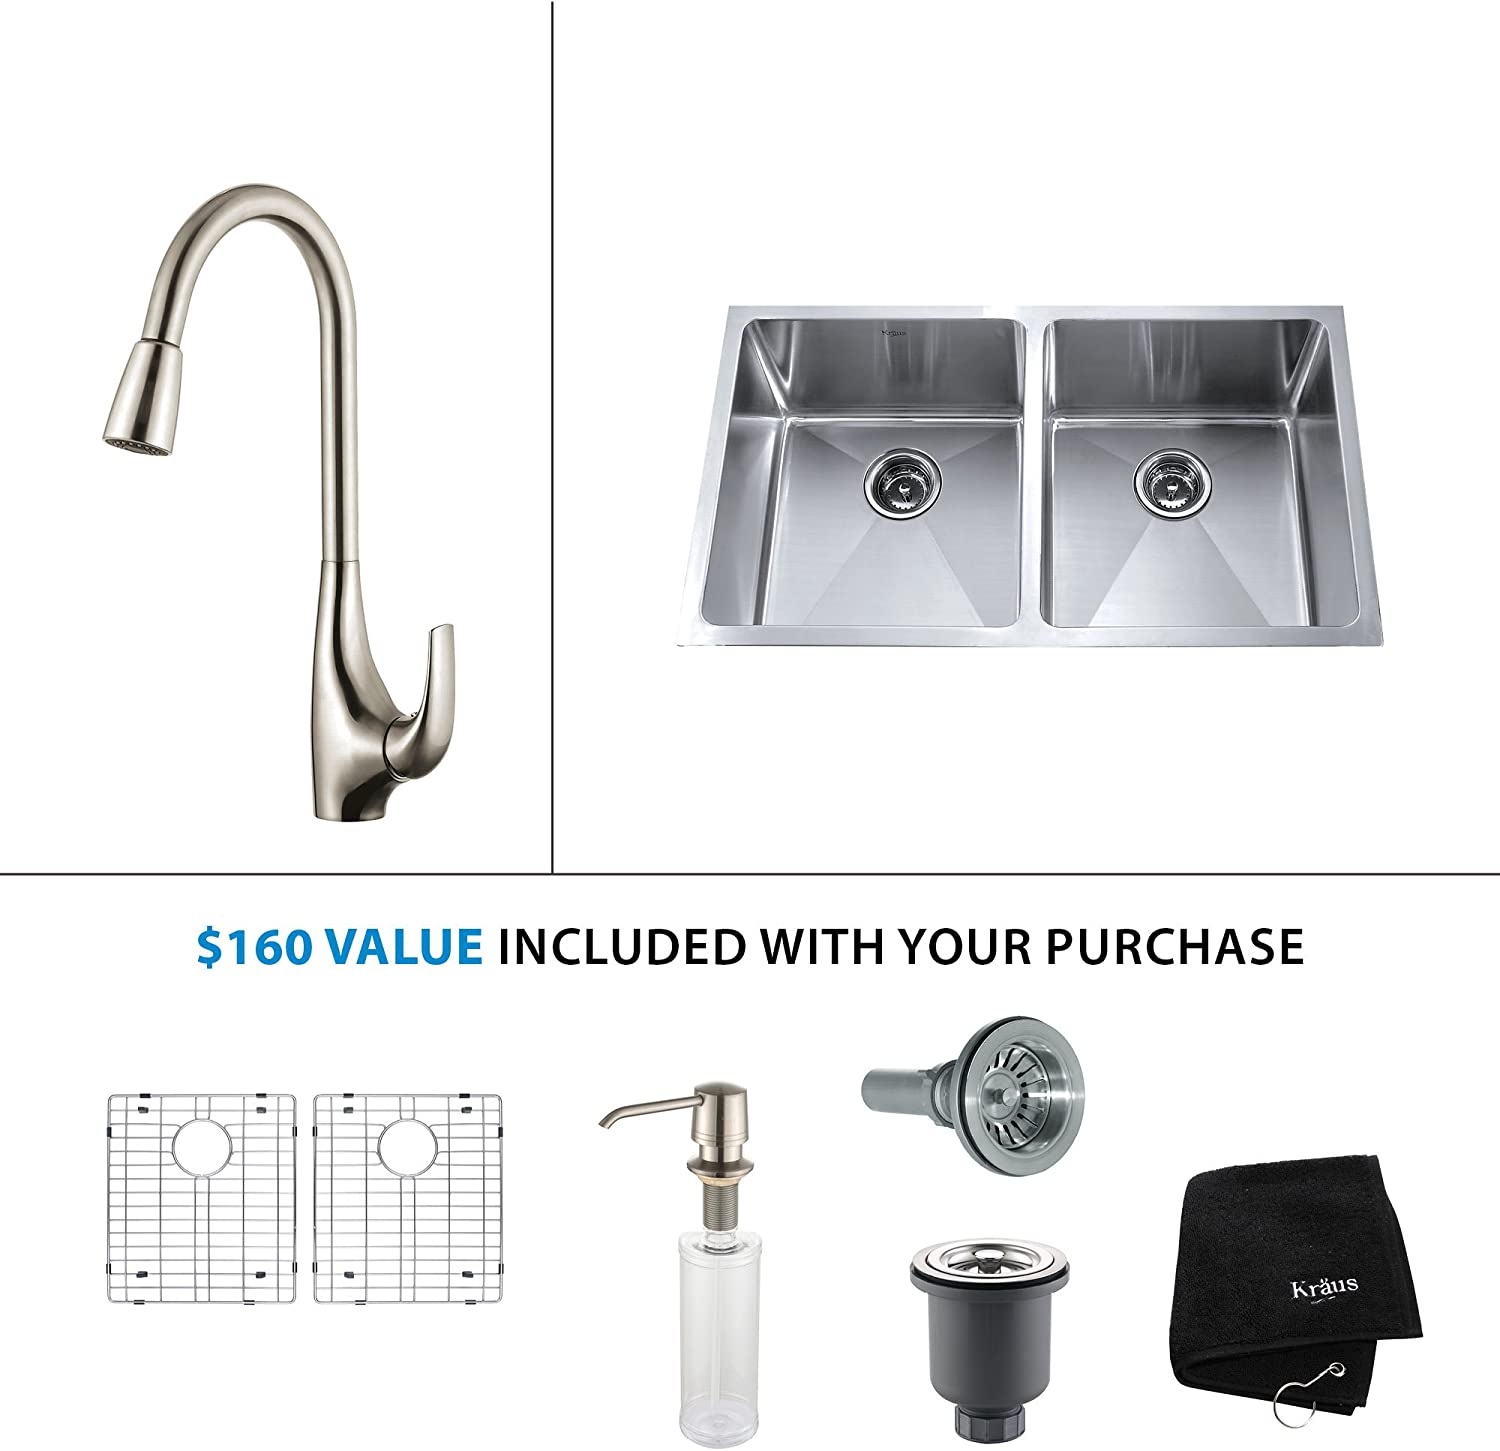 Kraus KHF203-33-KPF1612-KSD30SS 33 Farmhouse Double Bowl Stainless Steel Kitchen Sink with Stainless Steel Finish Kitchen Faucet and Soap Dispenser